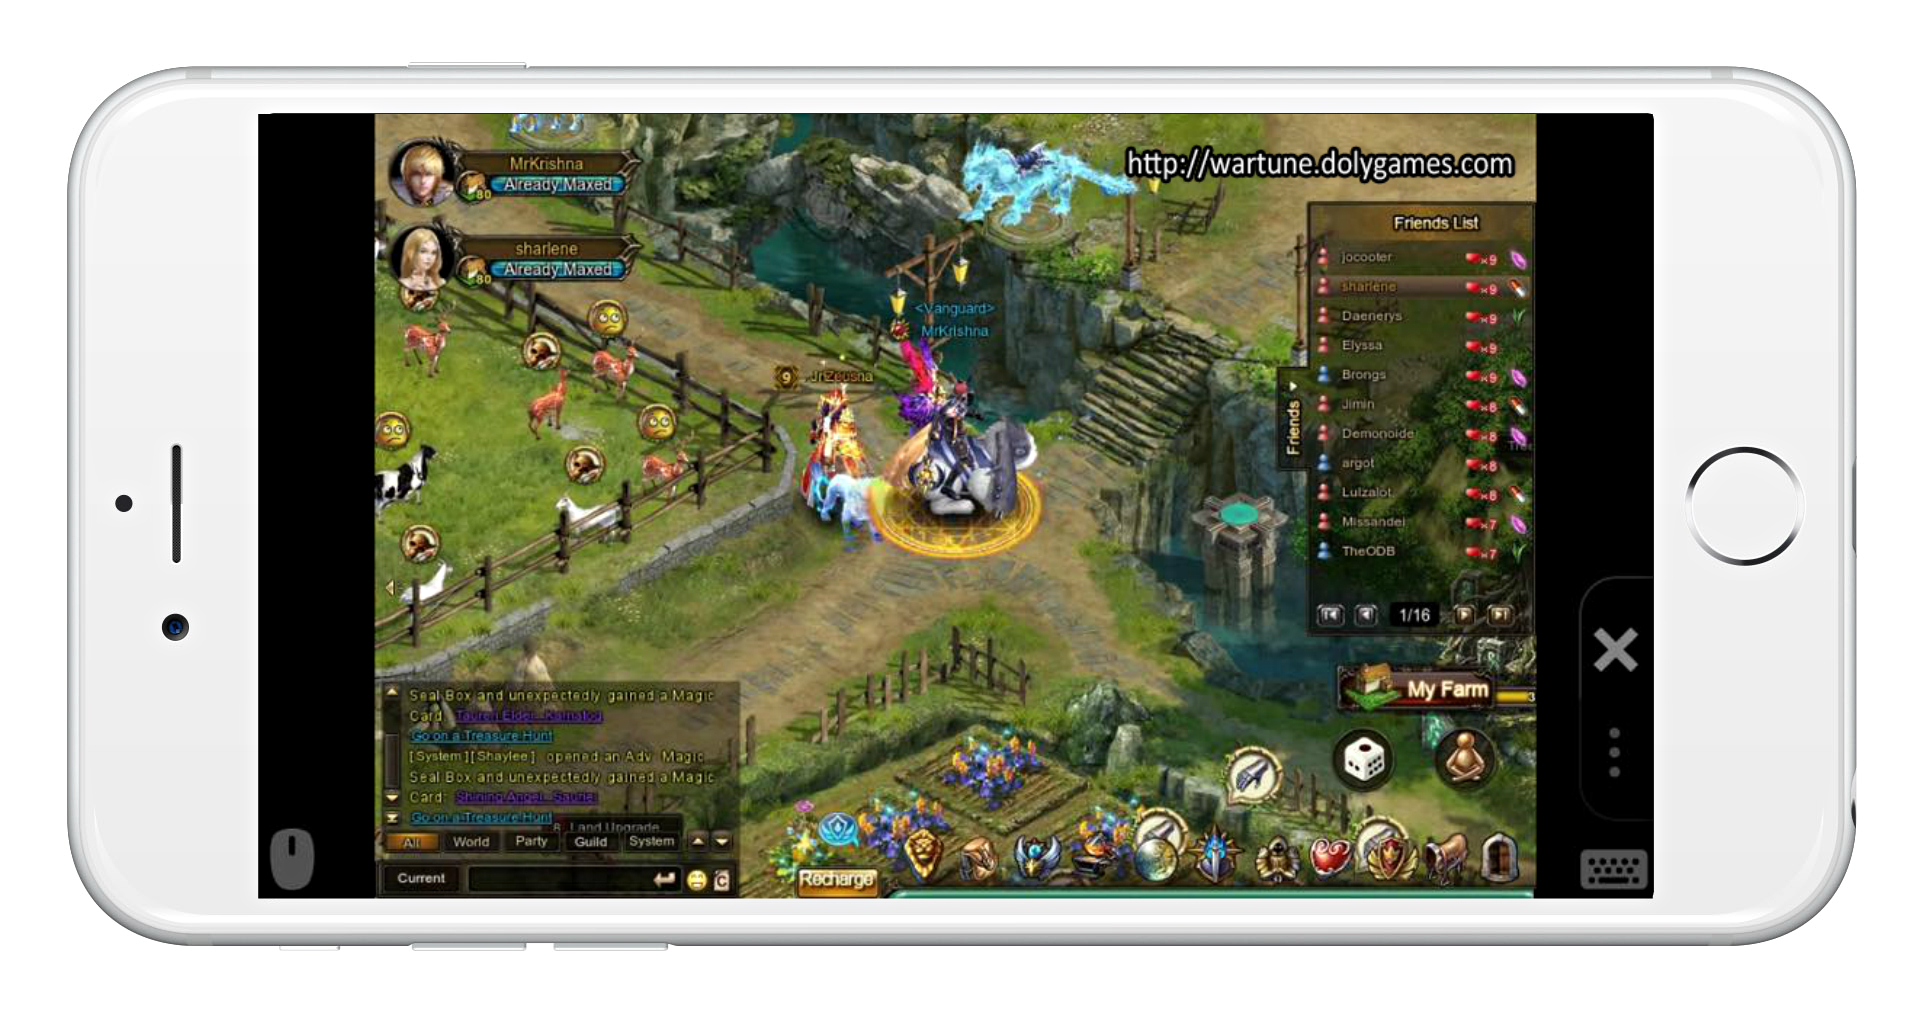 Wartune on Smartphone